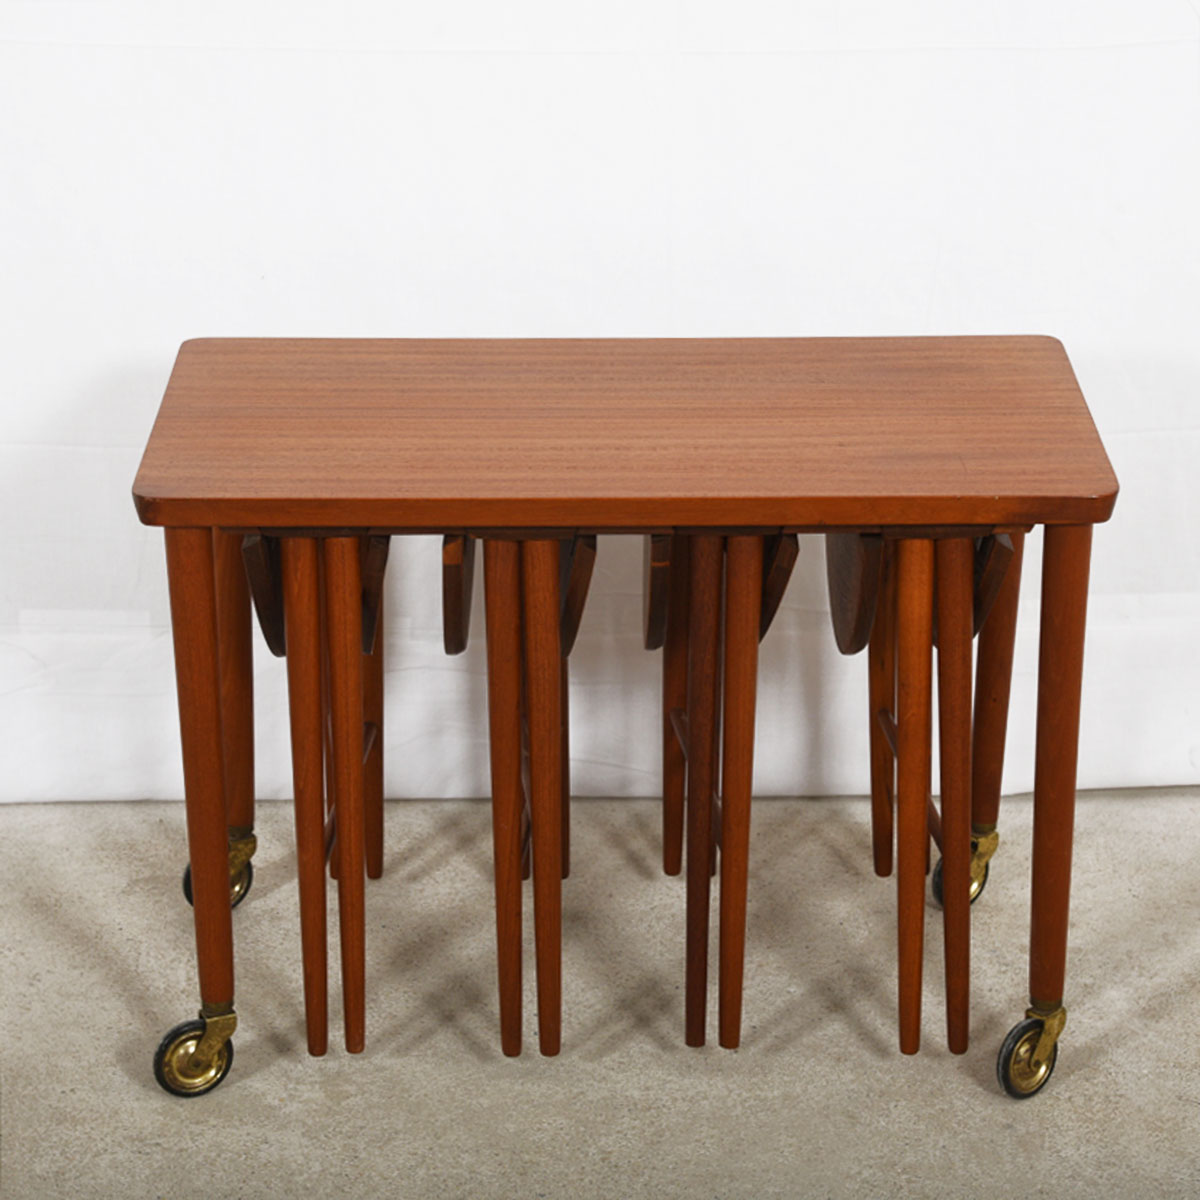 modern mobler drop leaf accent table danish teak rolling cart nesting tables tiffany rooster lamp central round counter height dining small wood teal end behind sofa twisted side